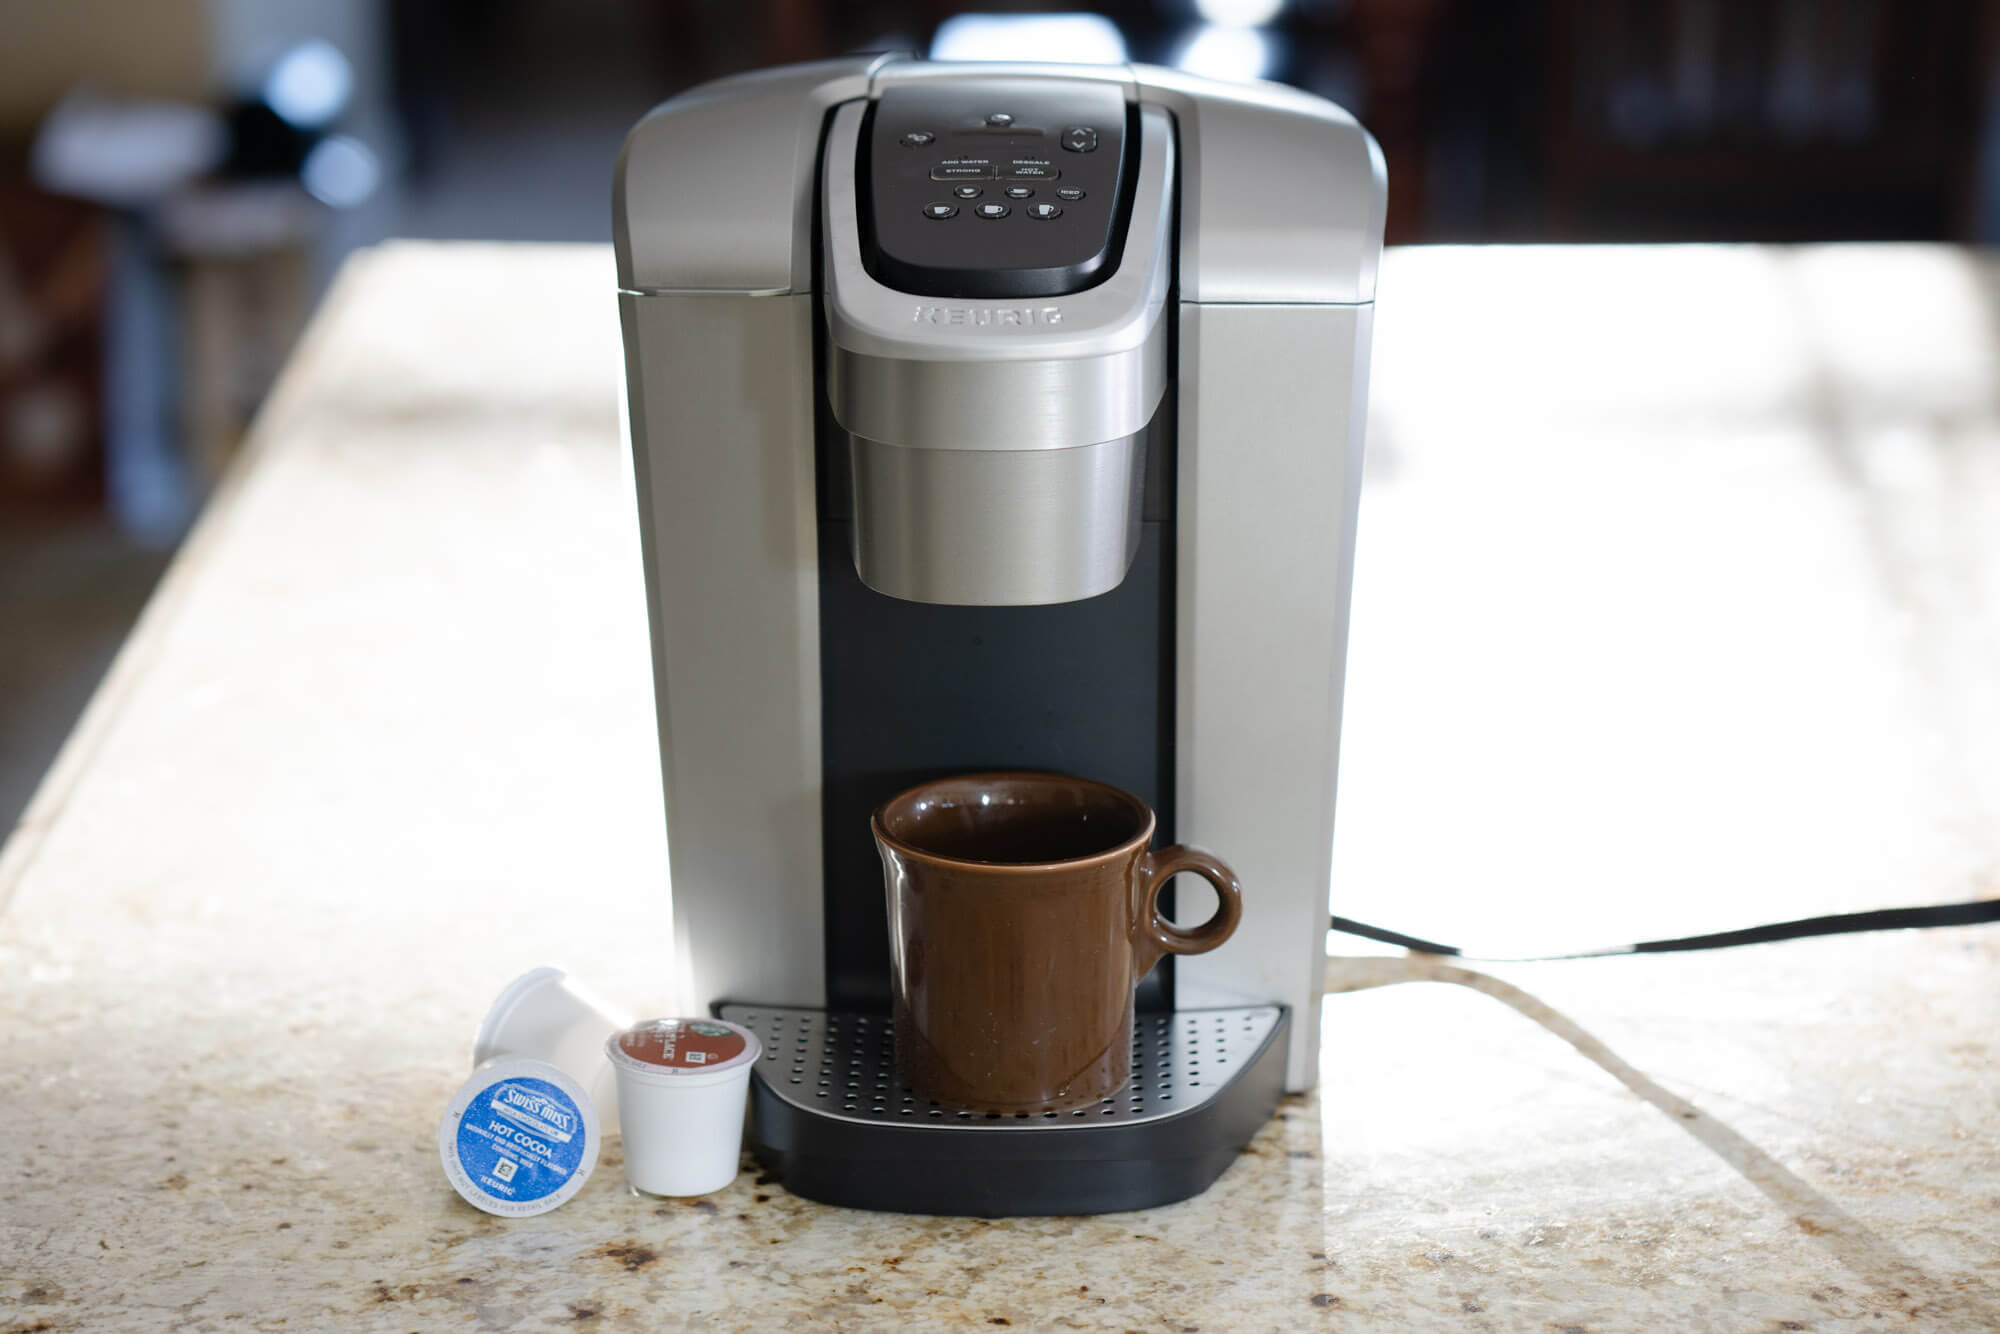 hight resolution of it s versatile easy to use and allows some adjustment plus it makes decent coffee